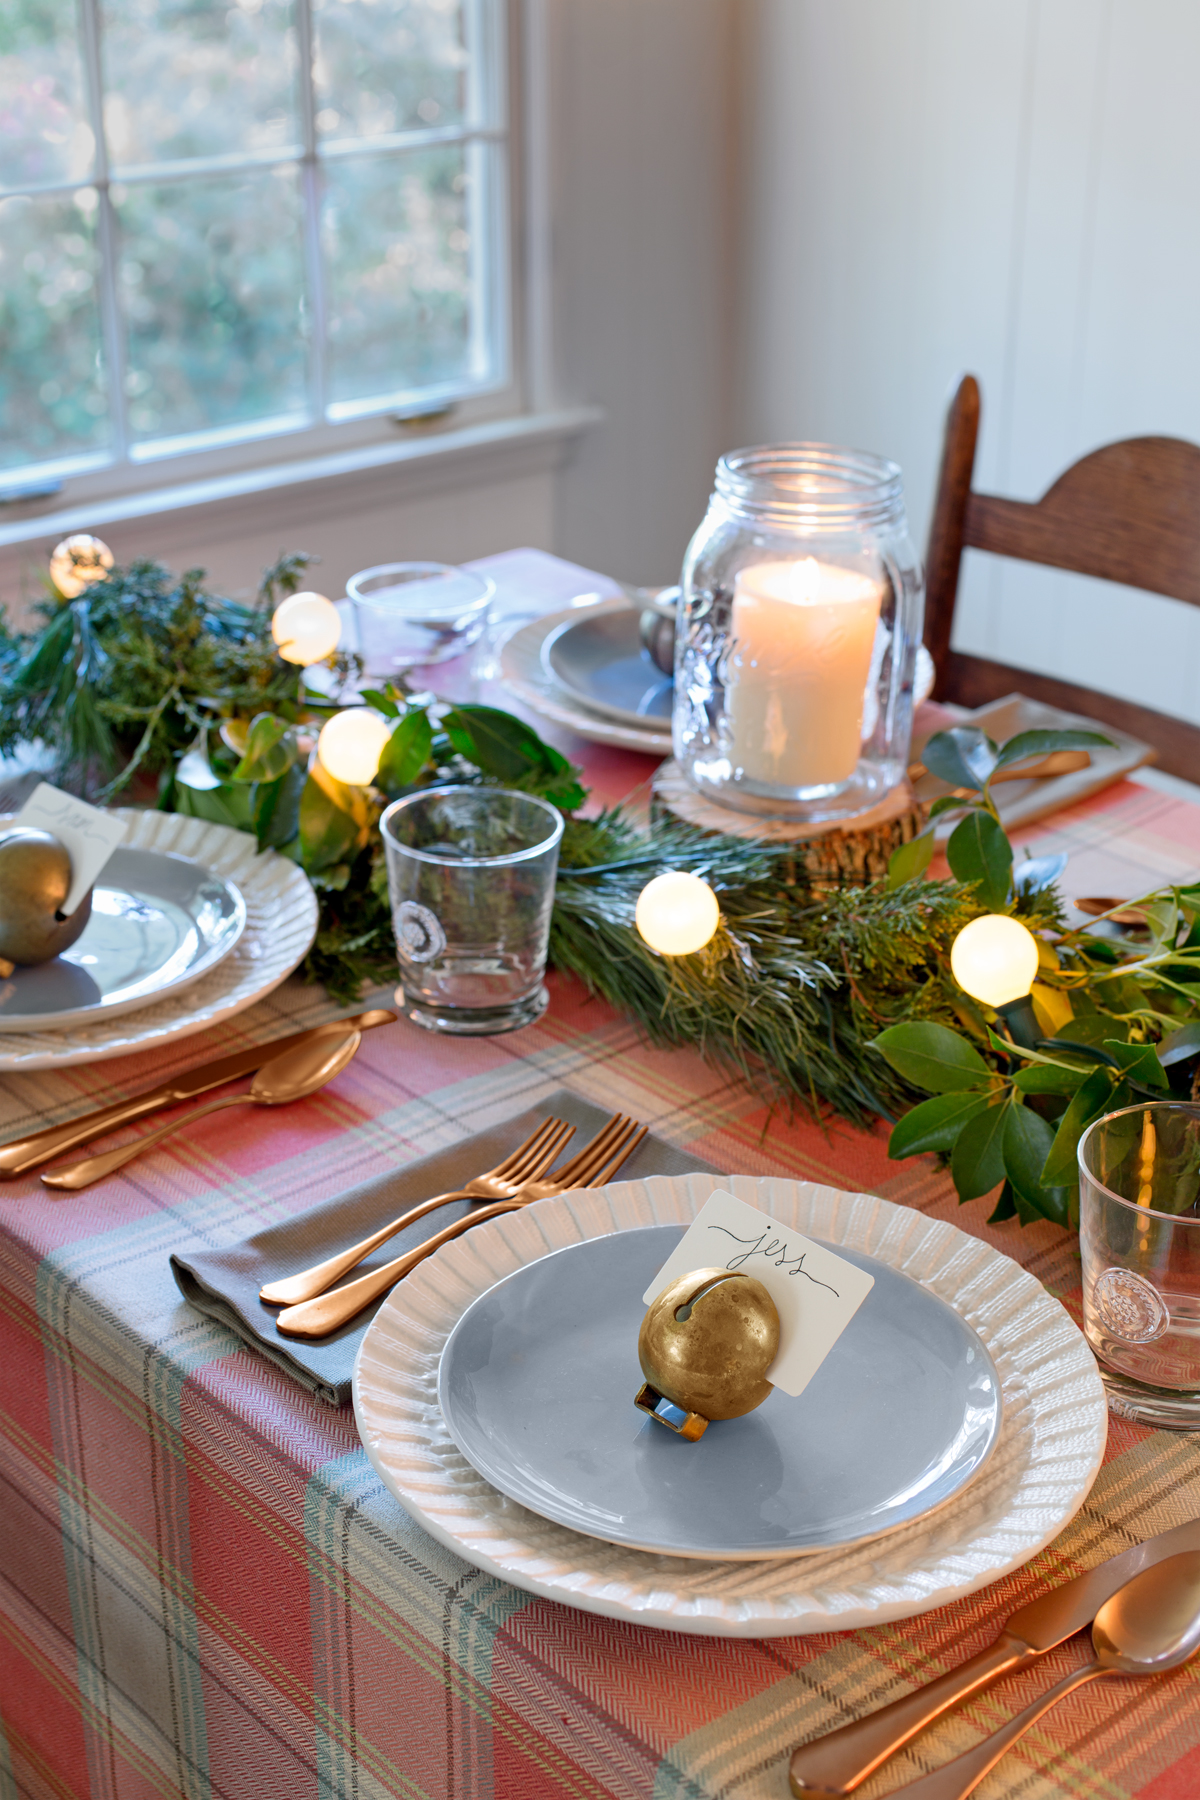 Country christmas table decoration ideas - Country Christmas Table Decoration Ideas 1